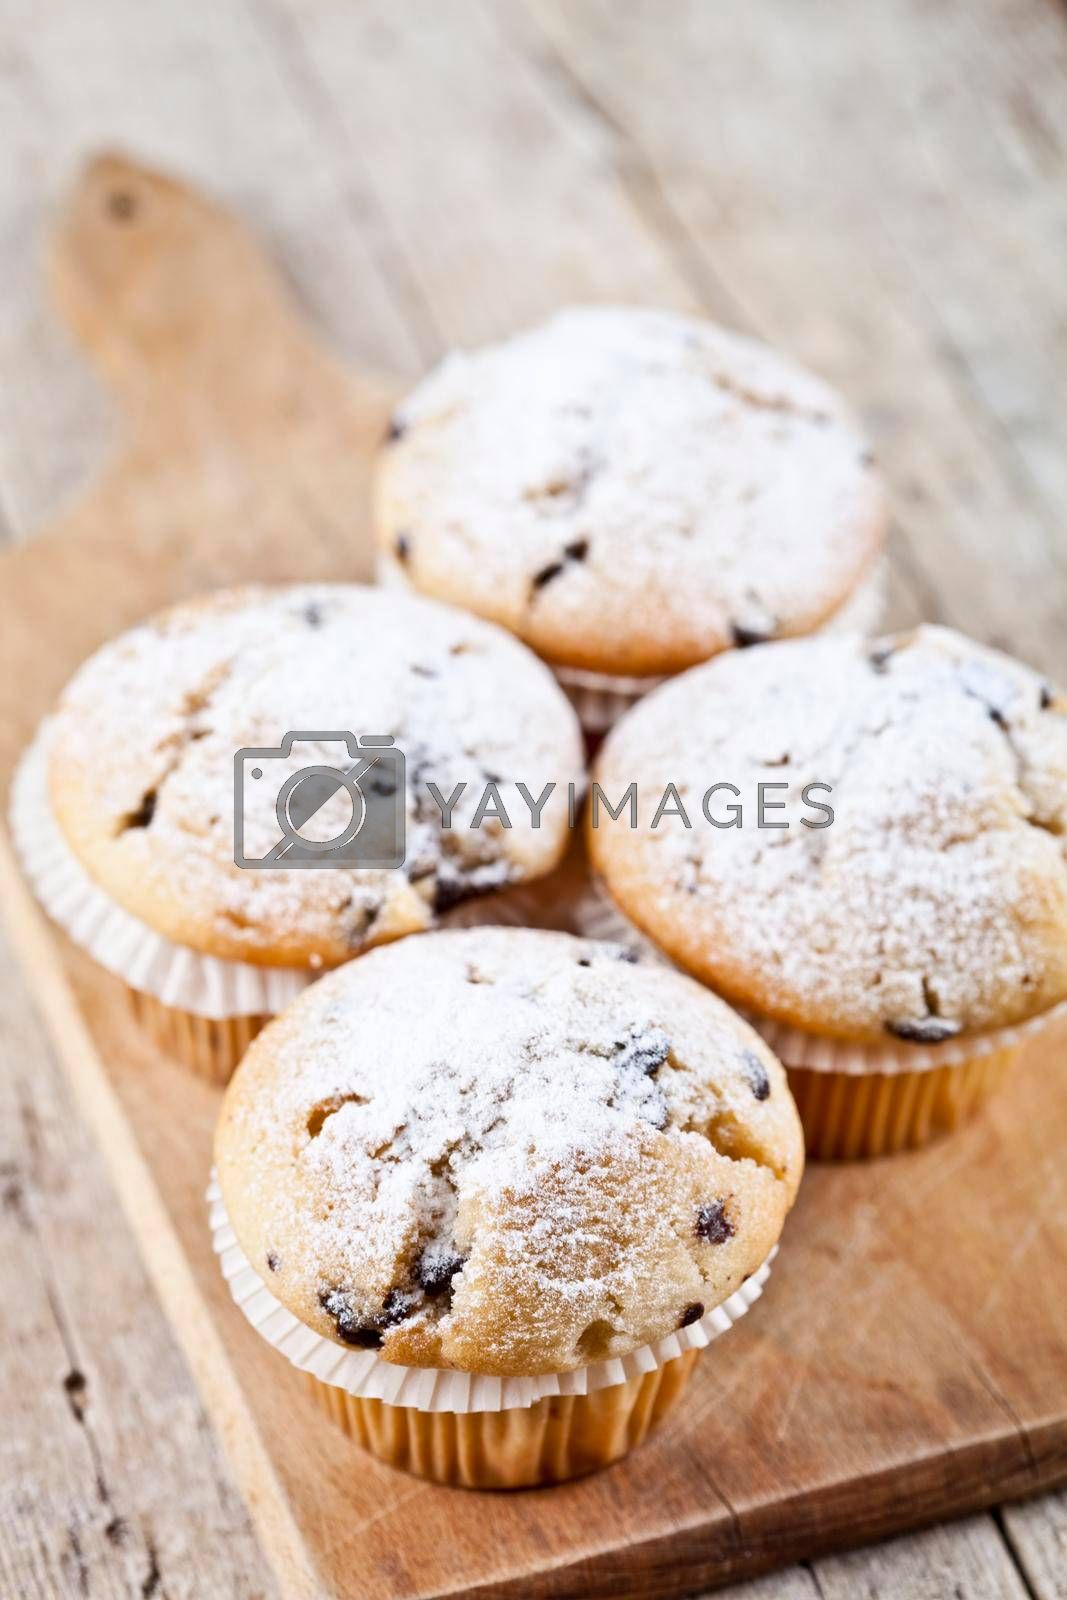 Homemade fresh muffins with sugar powder on cutting board rustic wooden table background.